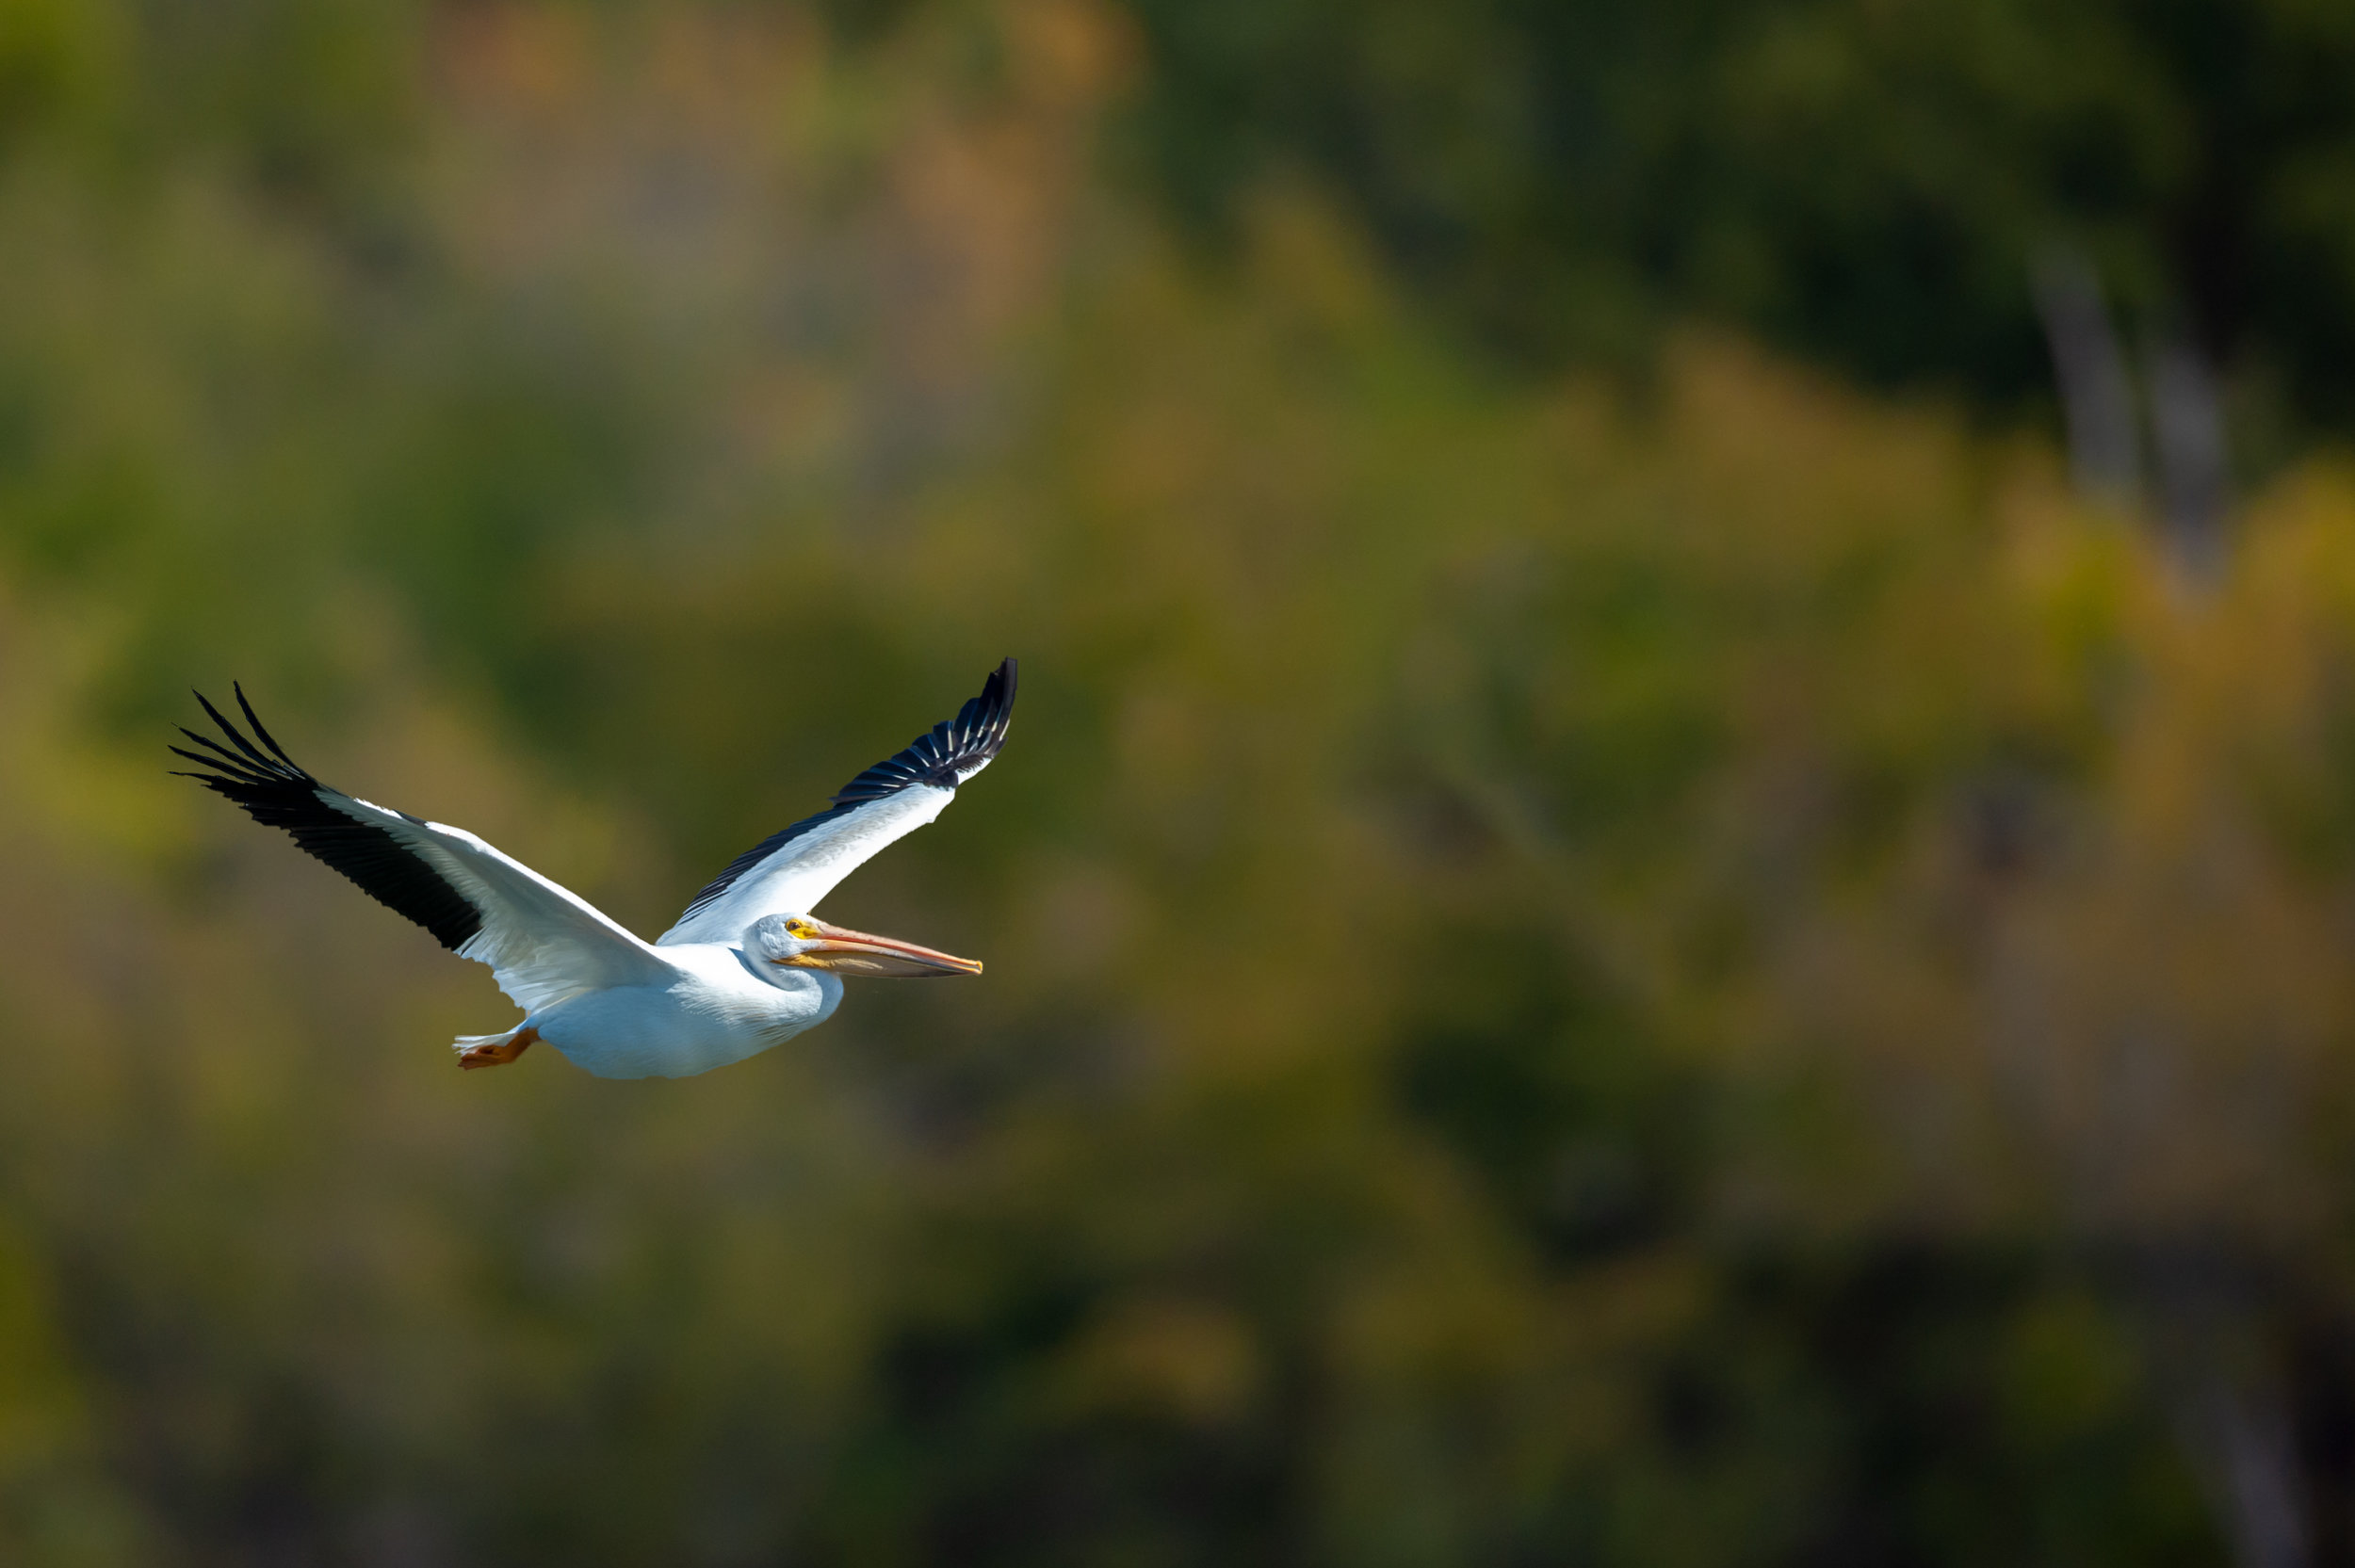 One of the White Pelicans that flew into the cove to join the feeding pod of birds.